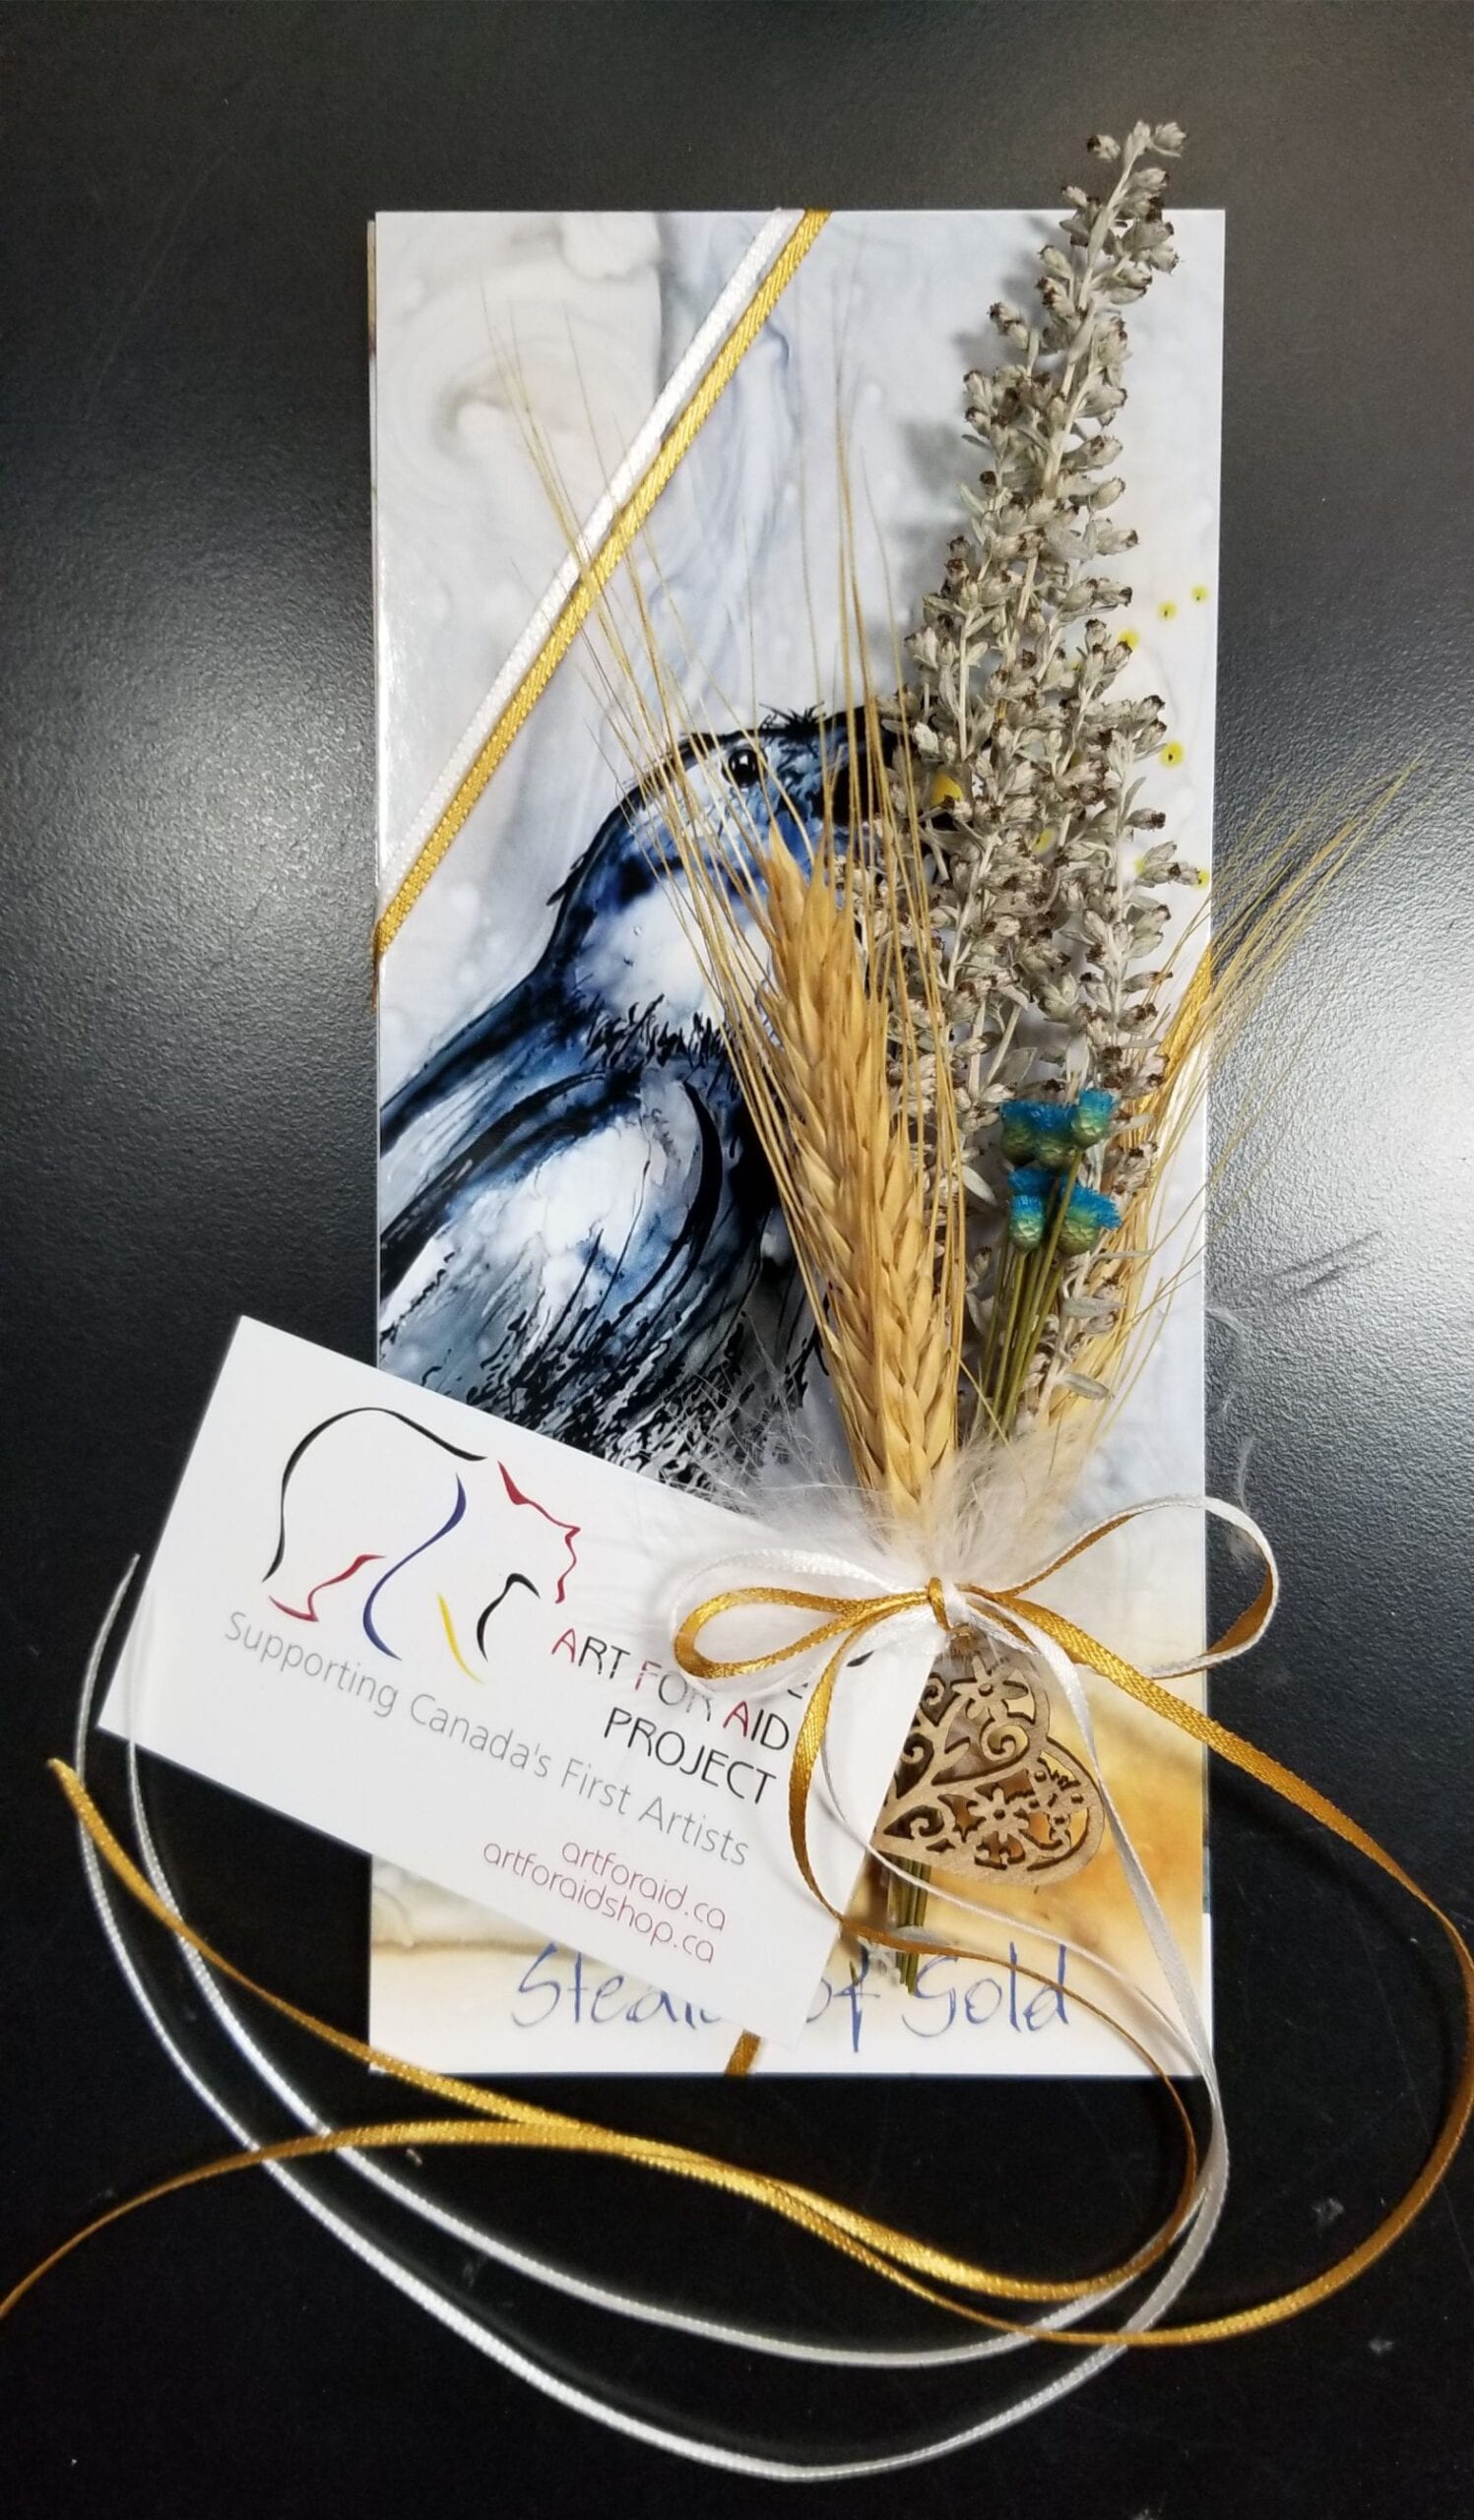 Bookmarks bundle beautifully decorated with ribbon and dried flowers.